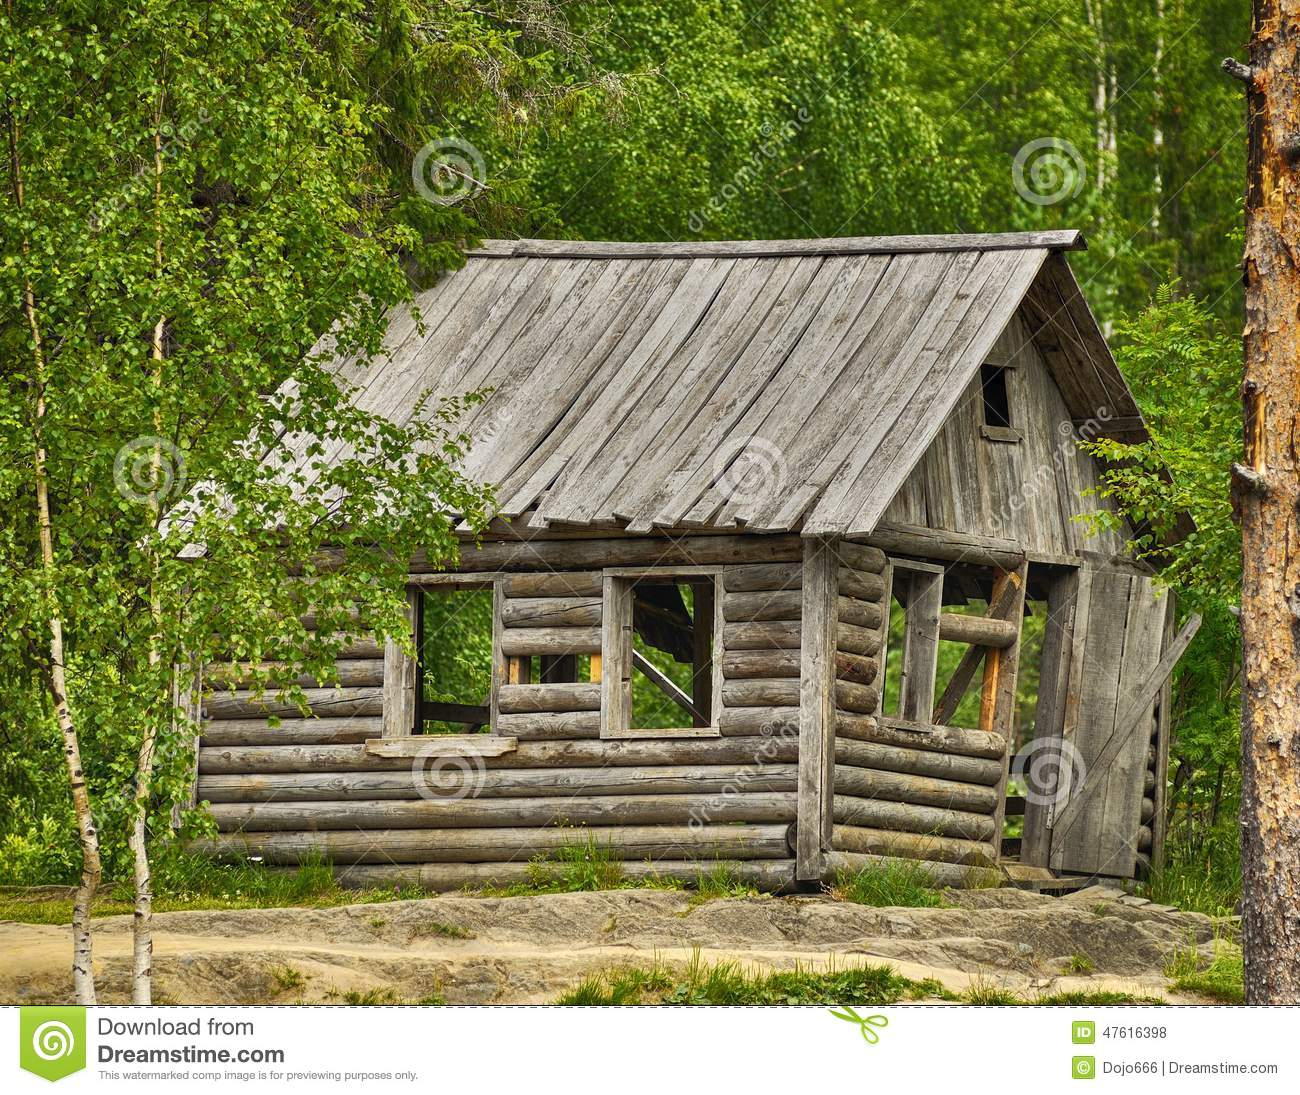 Forest house old russian typical wooden